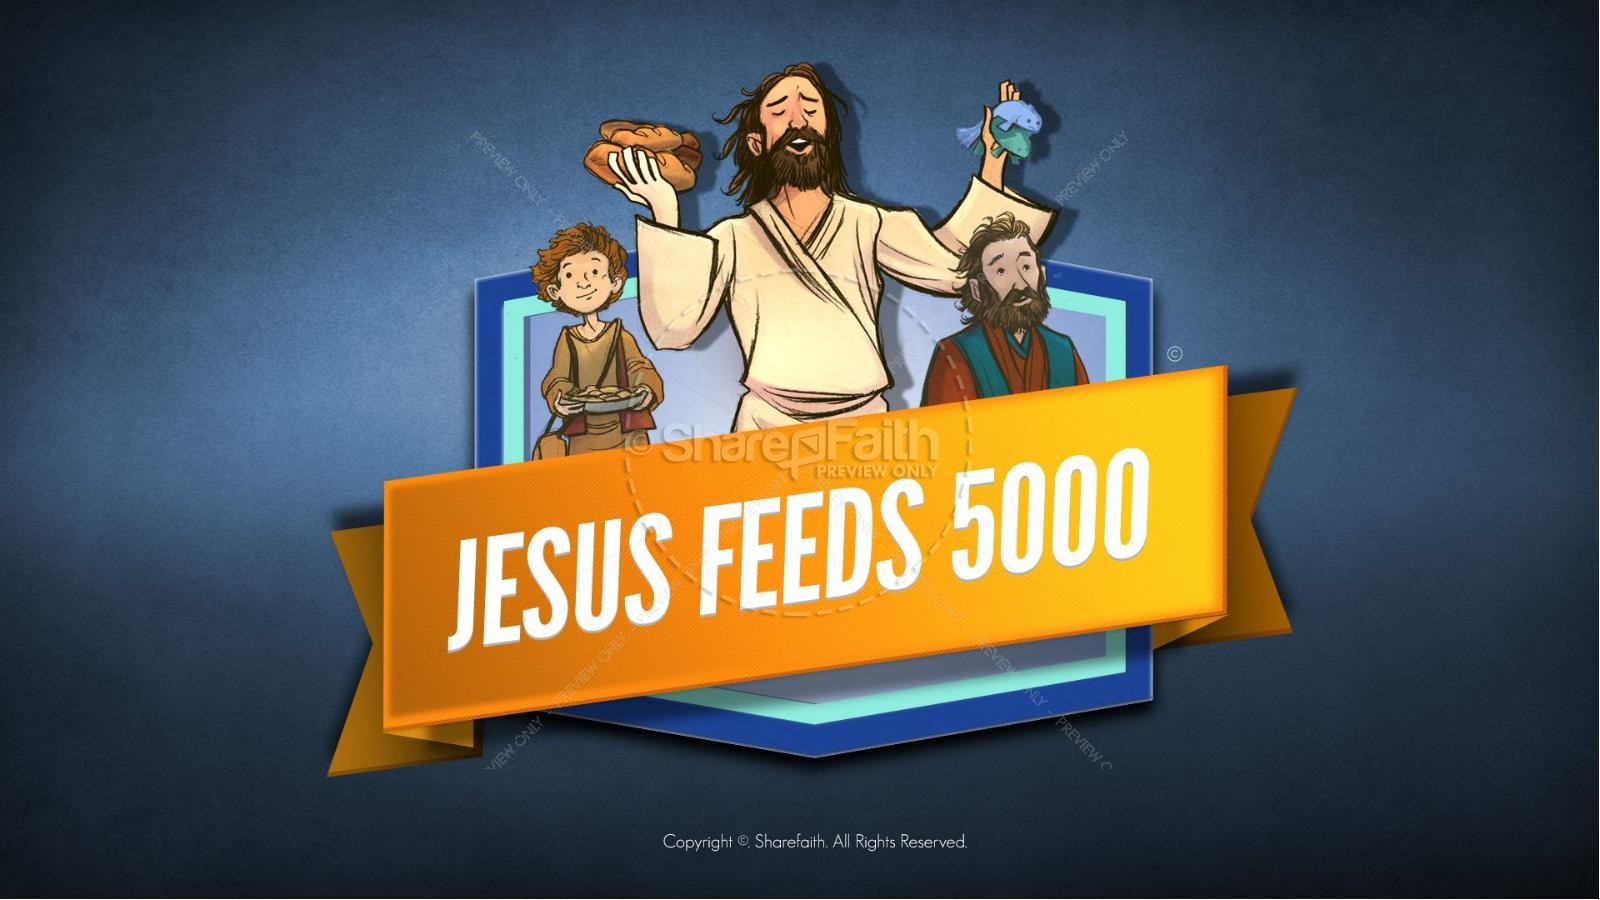 jesus feeds 5000 kids bible story kids bible stories free clipart for church bulletins for april free clipart for church bulletins for march